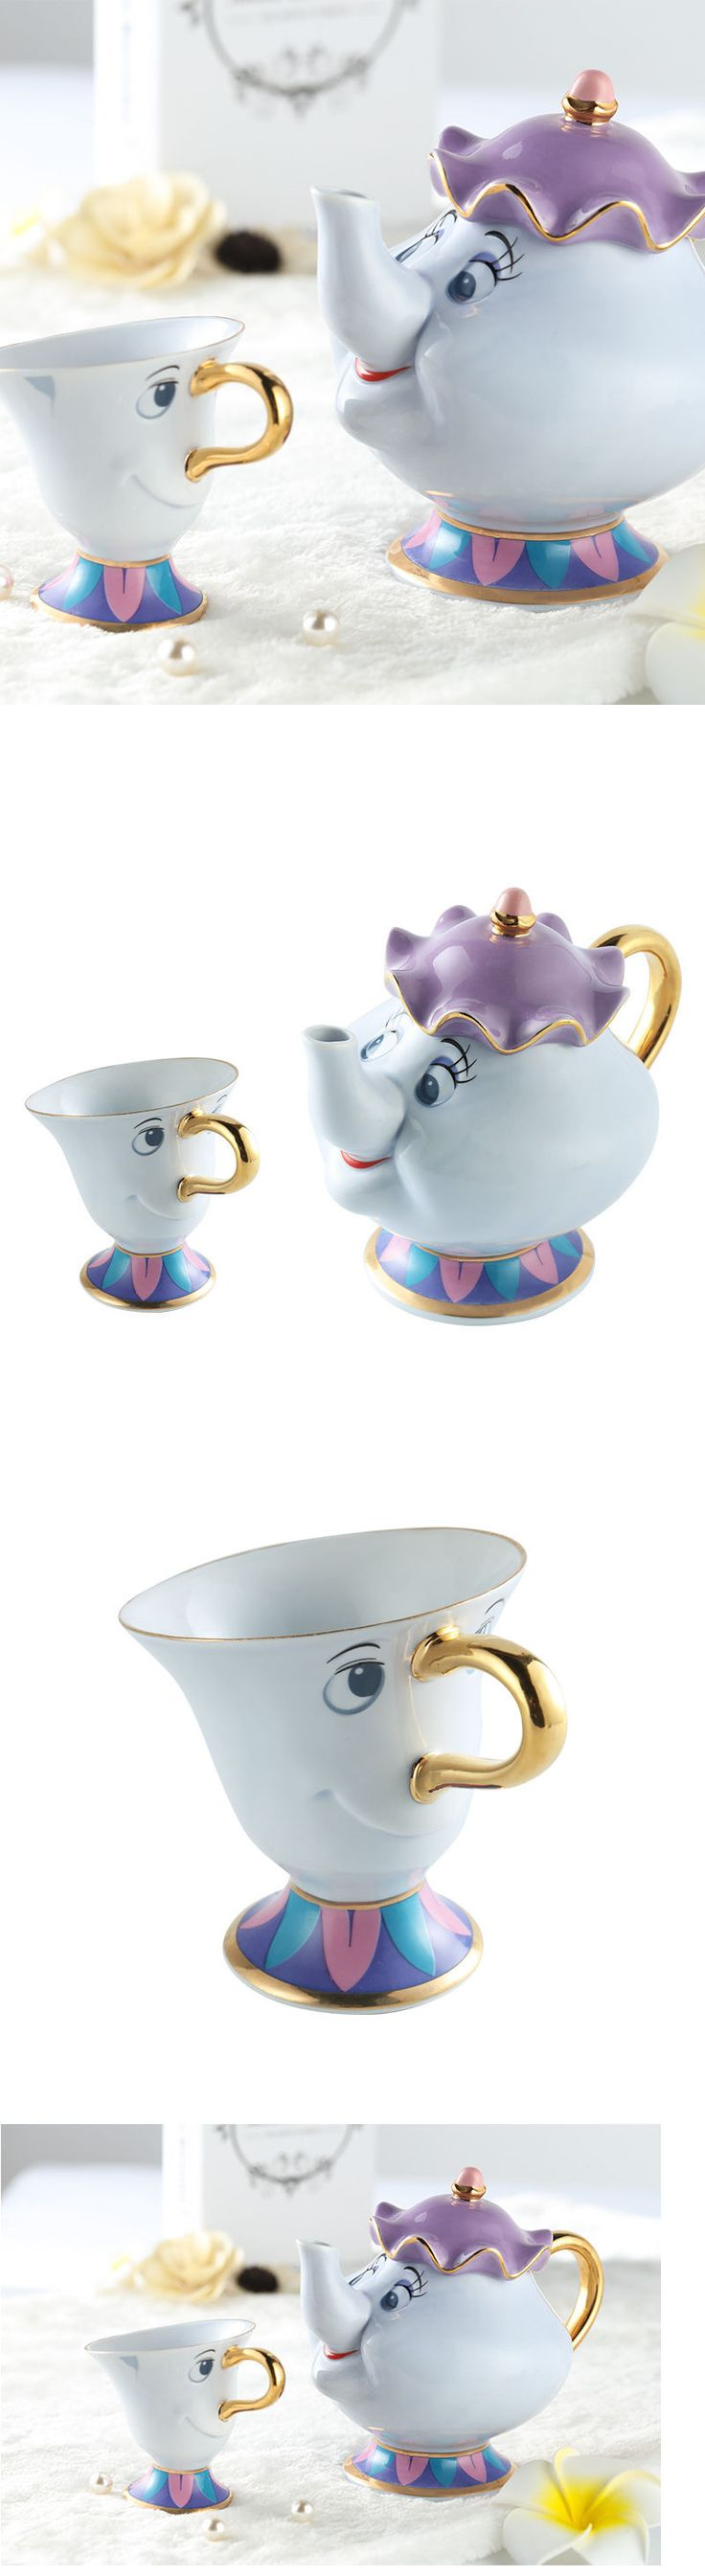 Beauty and the Beast 44033: Hot Sale Beauty And The Beast Tea Pot Set Mrs Potts Teapot Chip Cup Ceramic Gift -> BUY IT NOW ONLY: $38.99 on eBay!